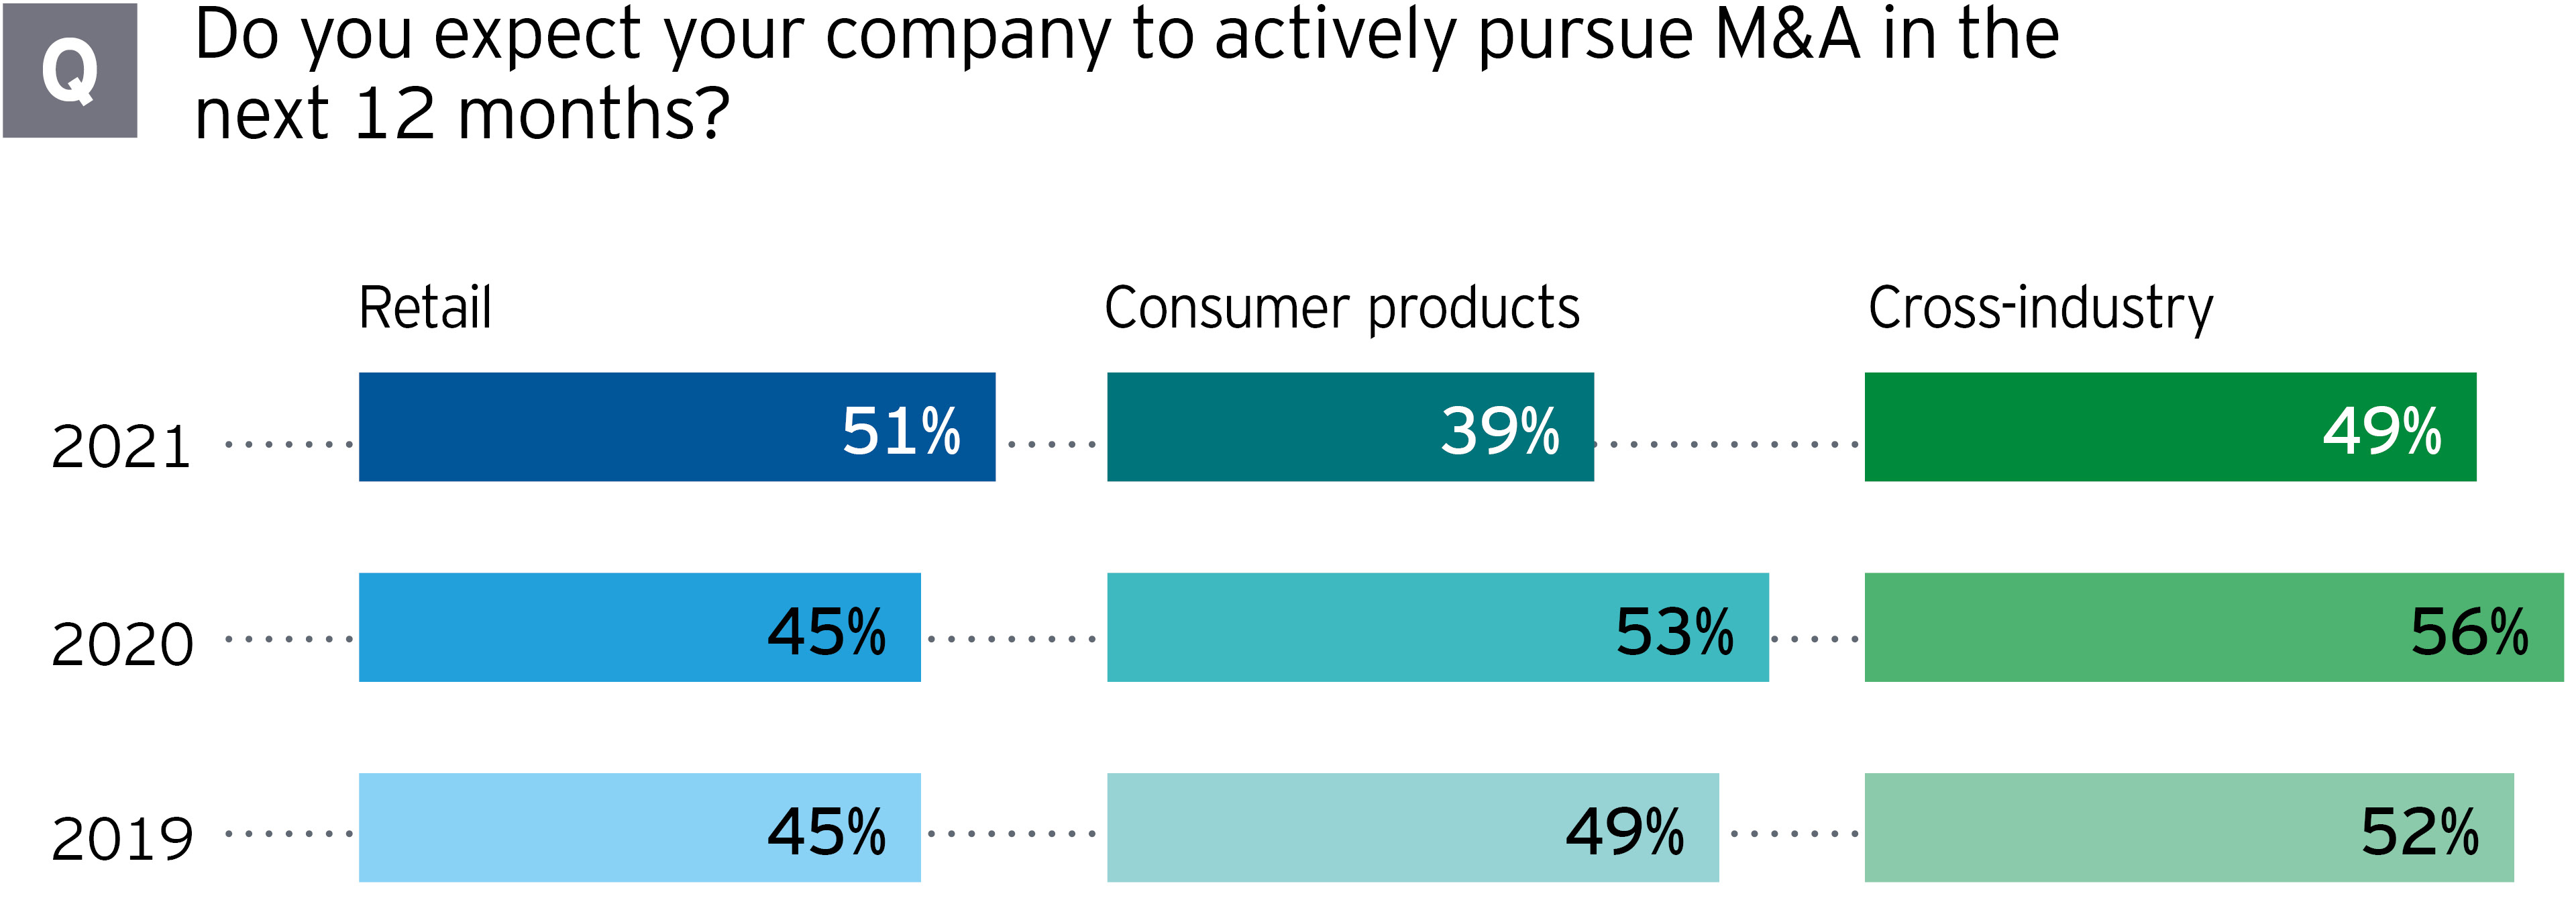 Retailers more likely to undertake M&A than other sectors